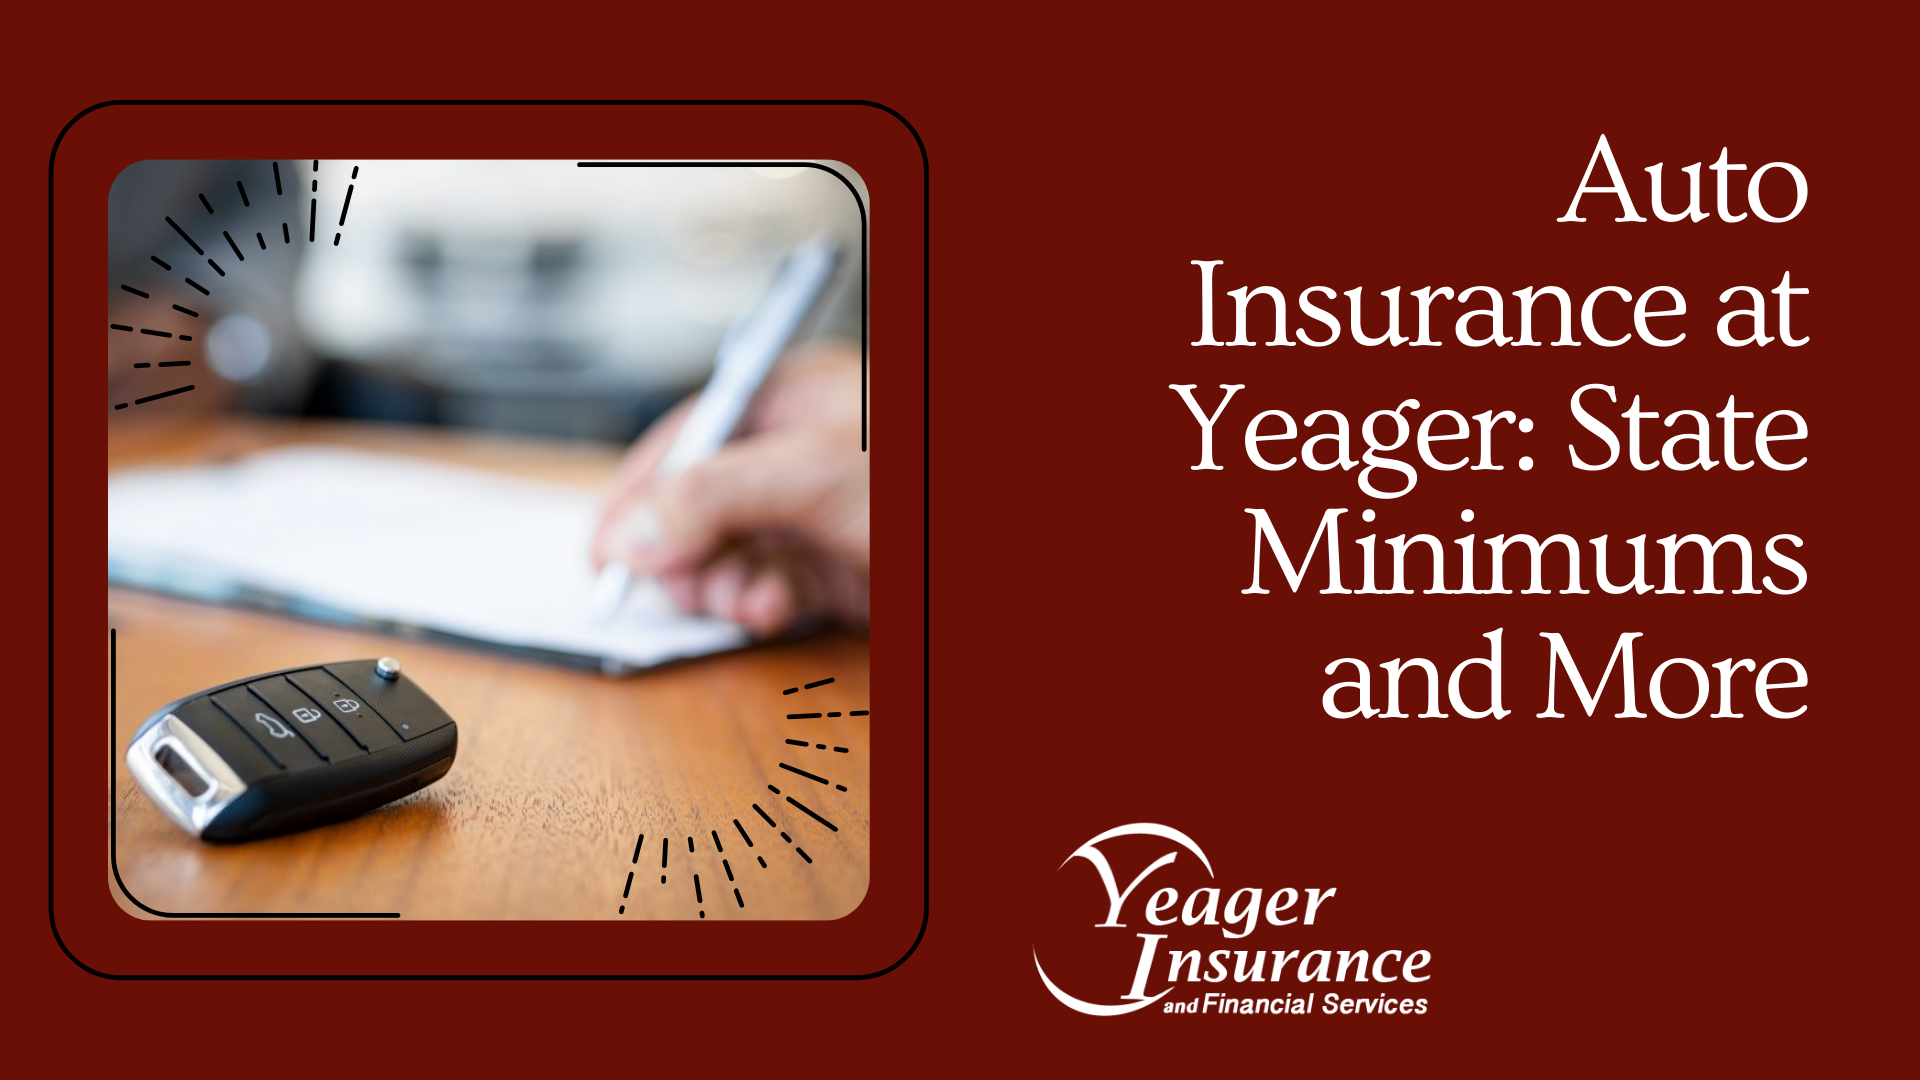 Auto Insurance at Yeager: State Minimuns & more - Yeager Insurance Blog